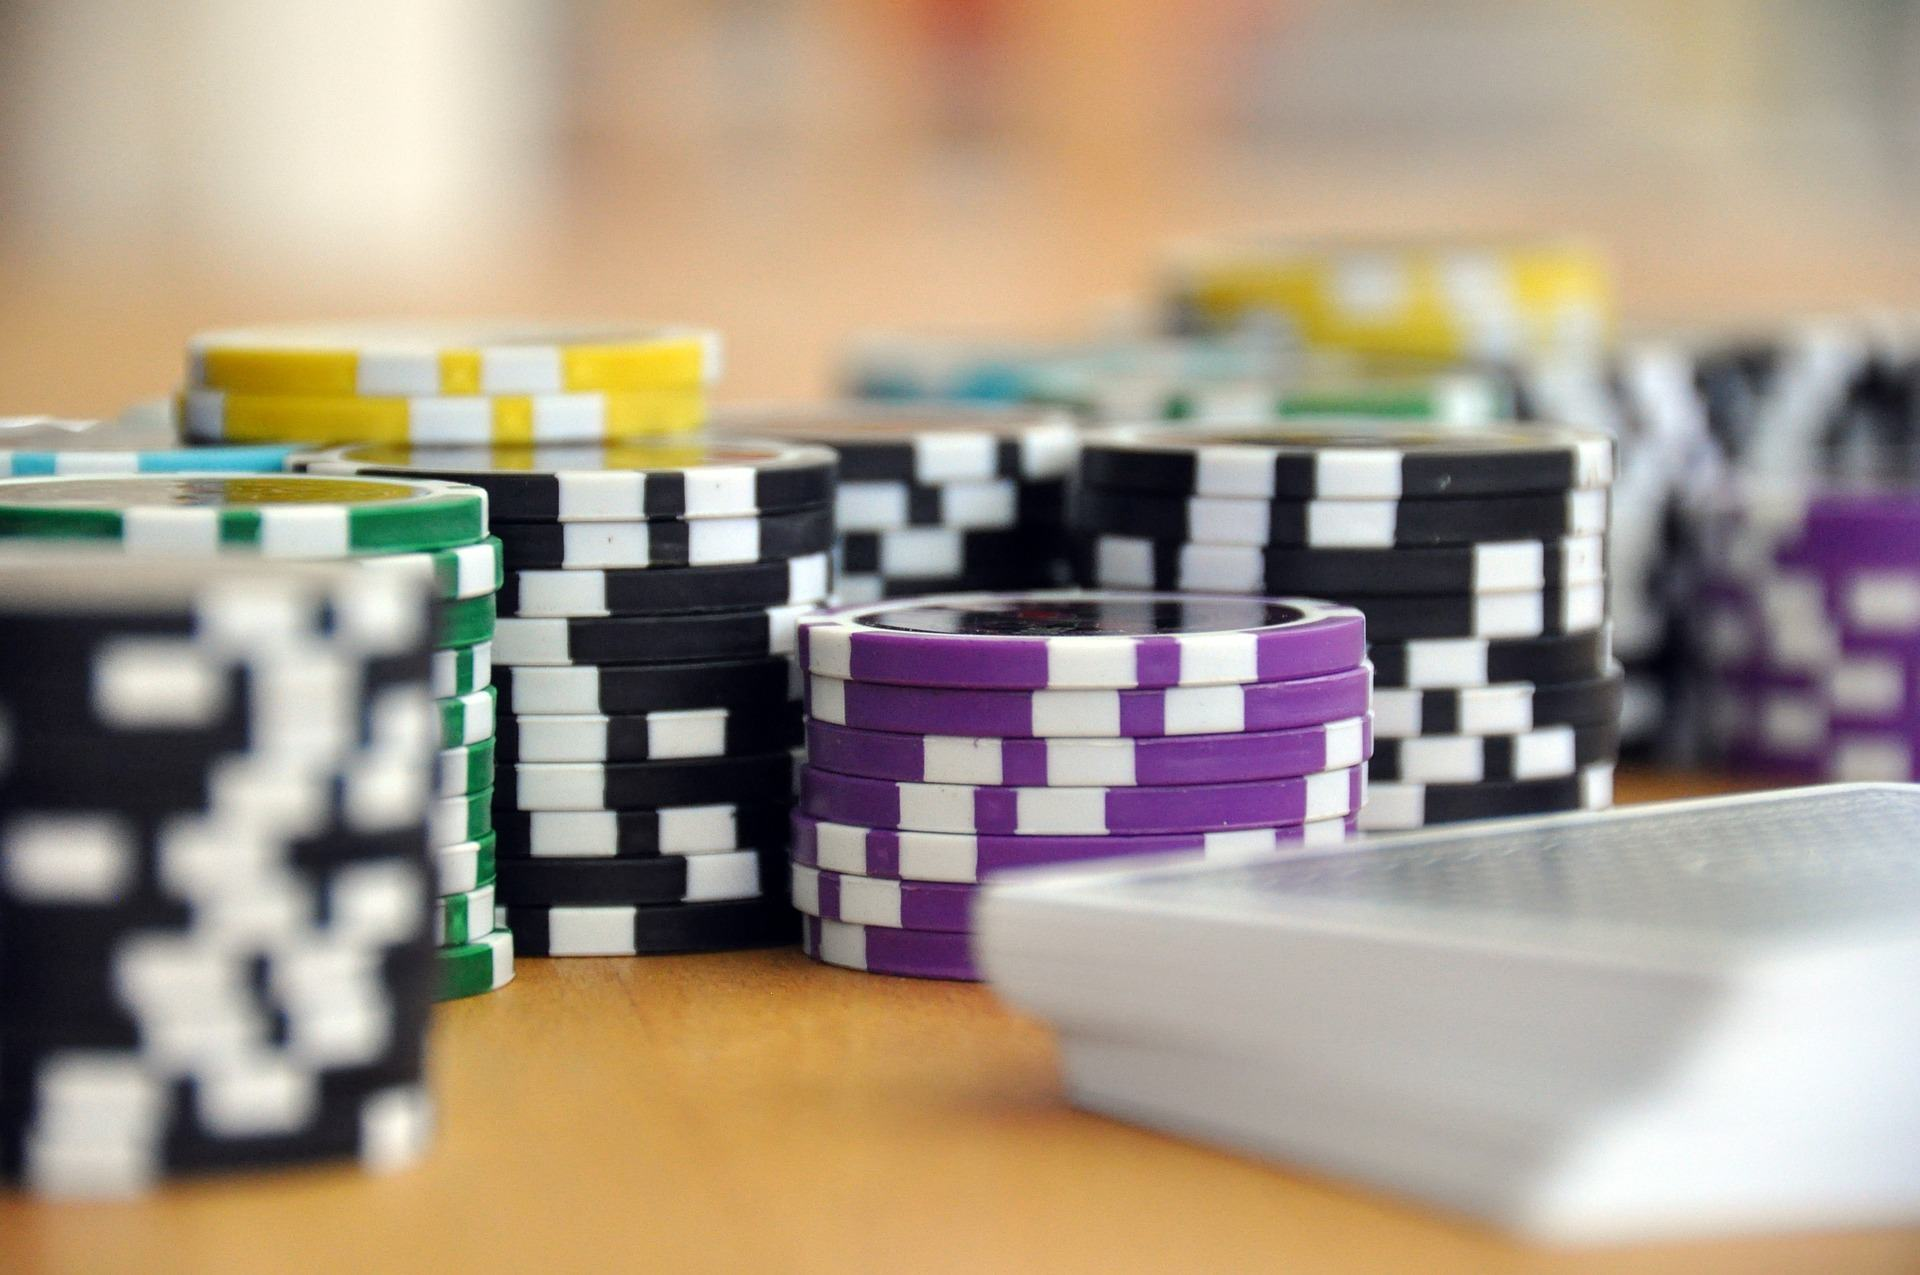 Online Gambling - A leader in technological innovation - Compare the Cloud